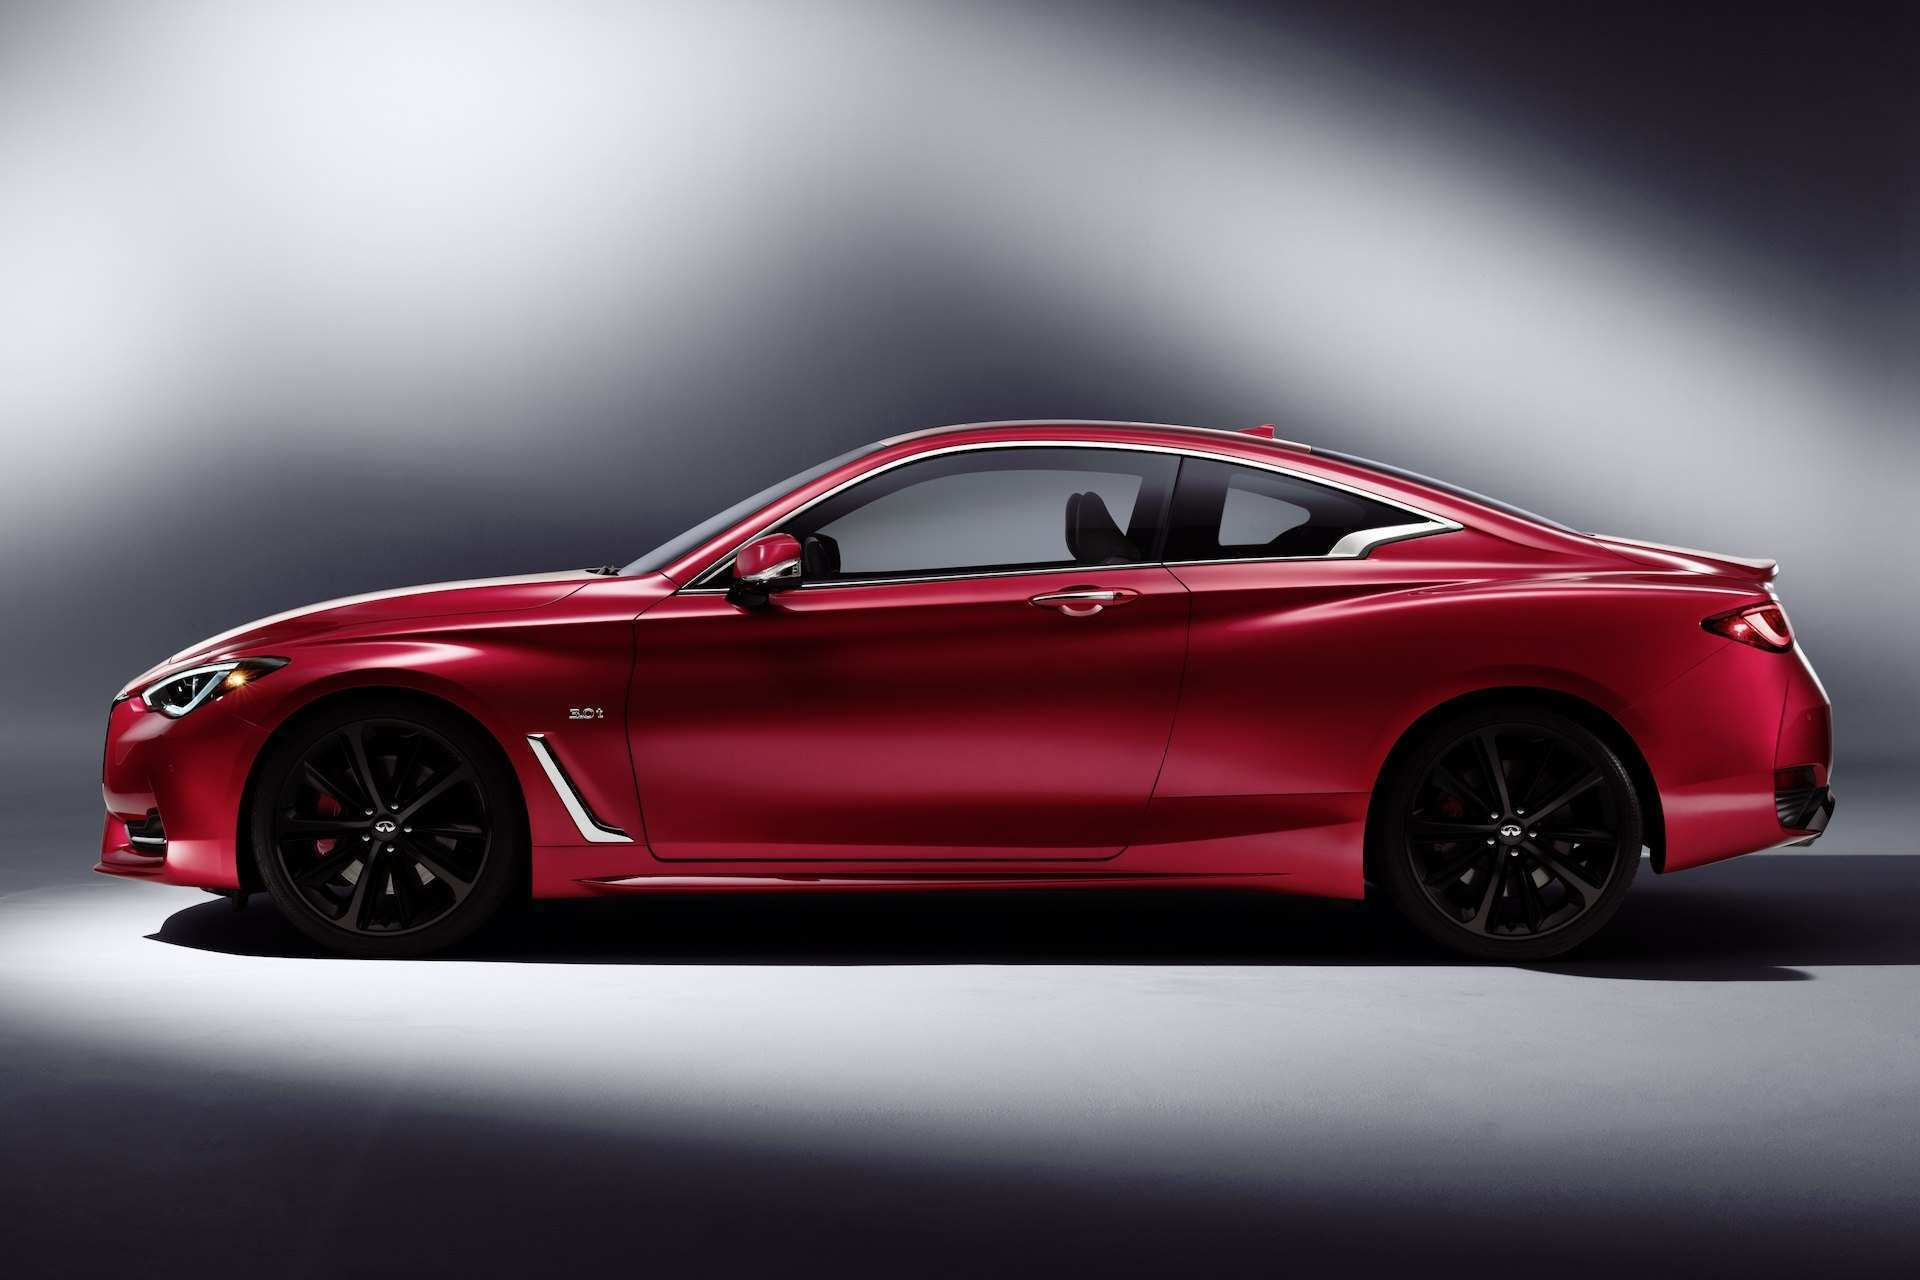 22 Best 2020 Infiniti Q60 Coupe Ipl Research New